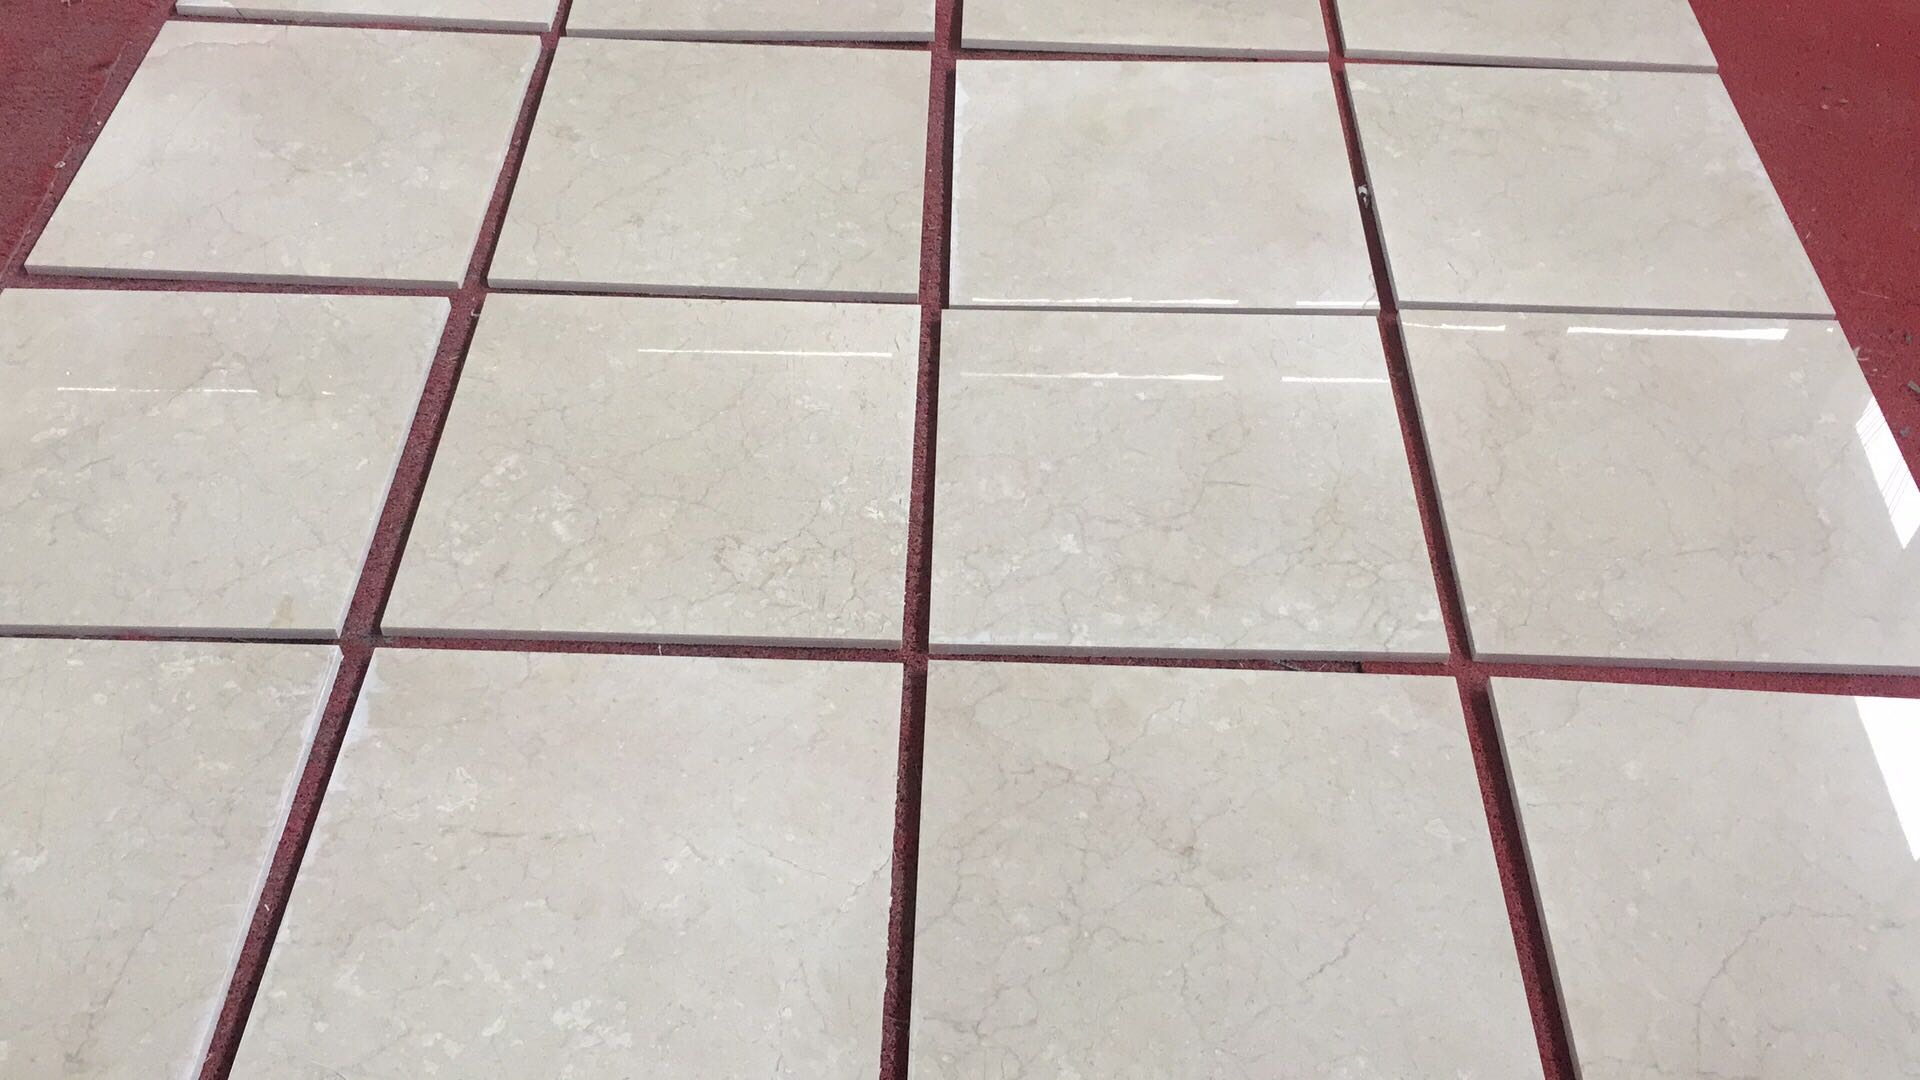 China Manufacture Natural Stone Cream Marfil Marble Tiles